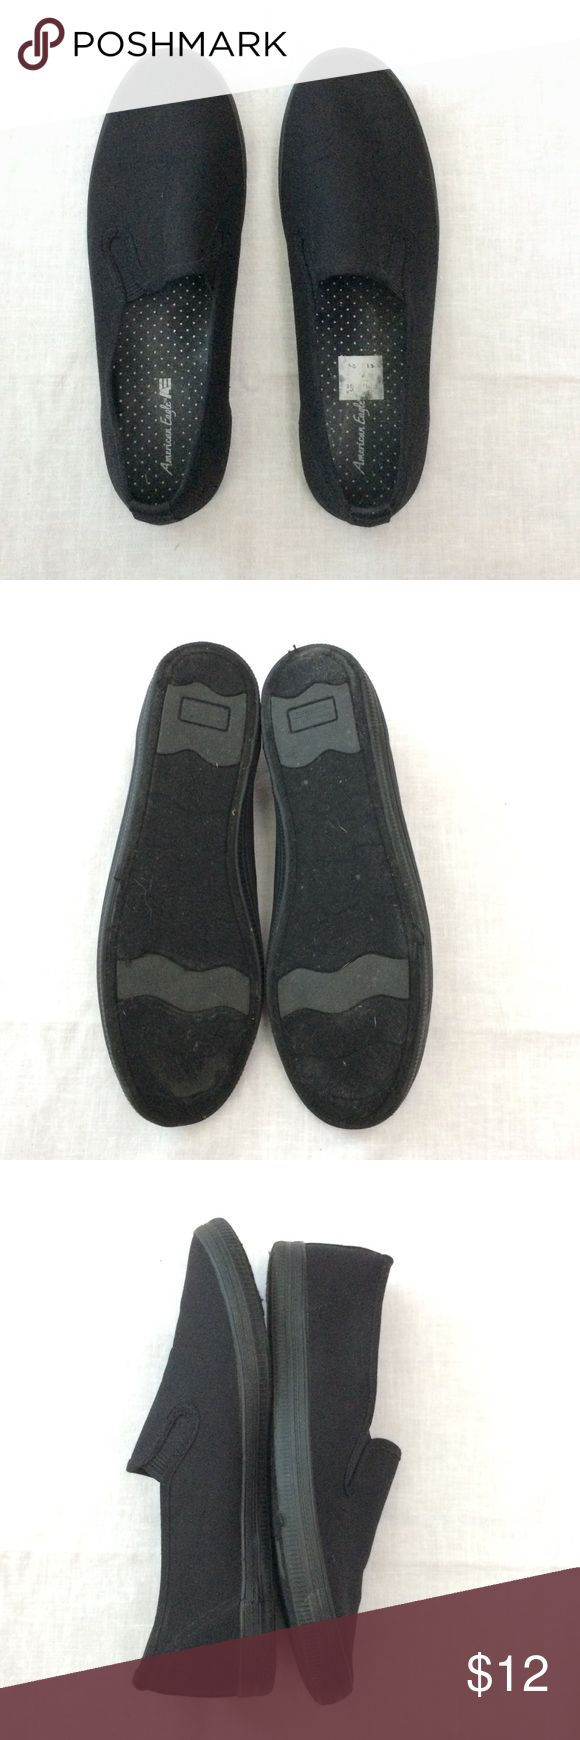 NEW LISTING American Eagle Shoe Size 9W American Eagle black slip on shoe size 9W  Canvas upper balance & man made materials.   In good condition.   Open to offers.   Thanks for browsing. American Eagle By Payless Shoes